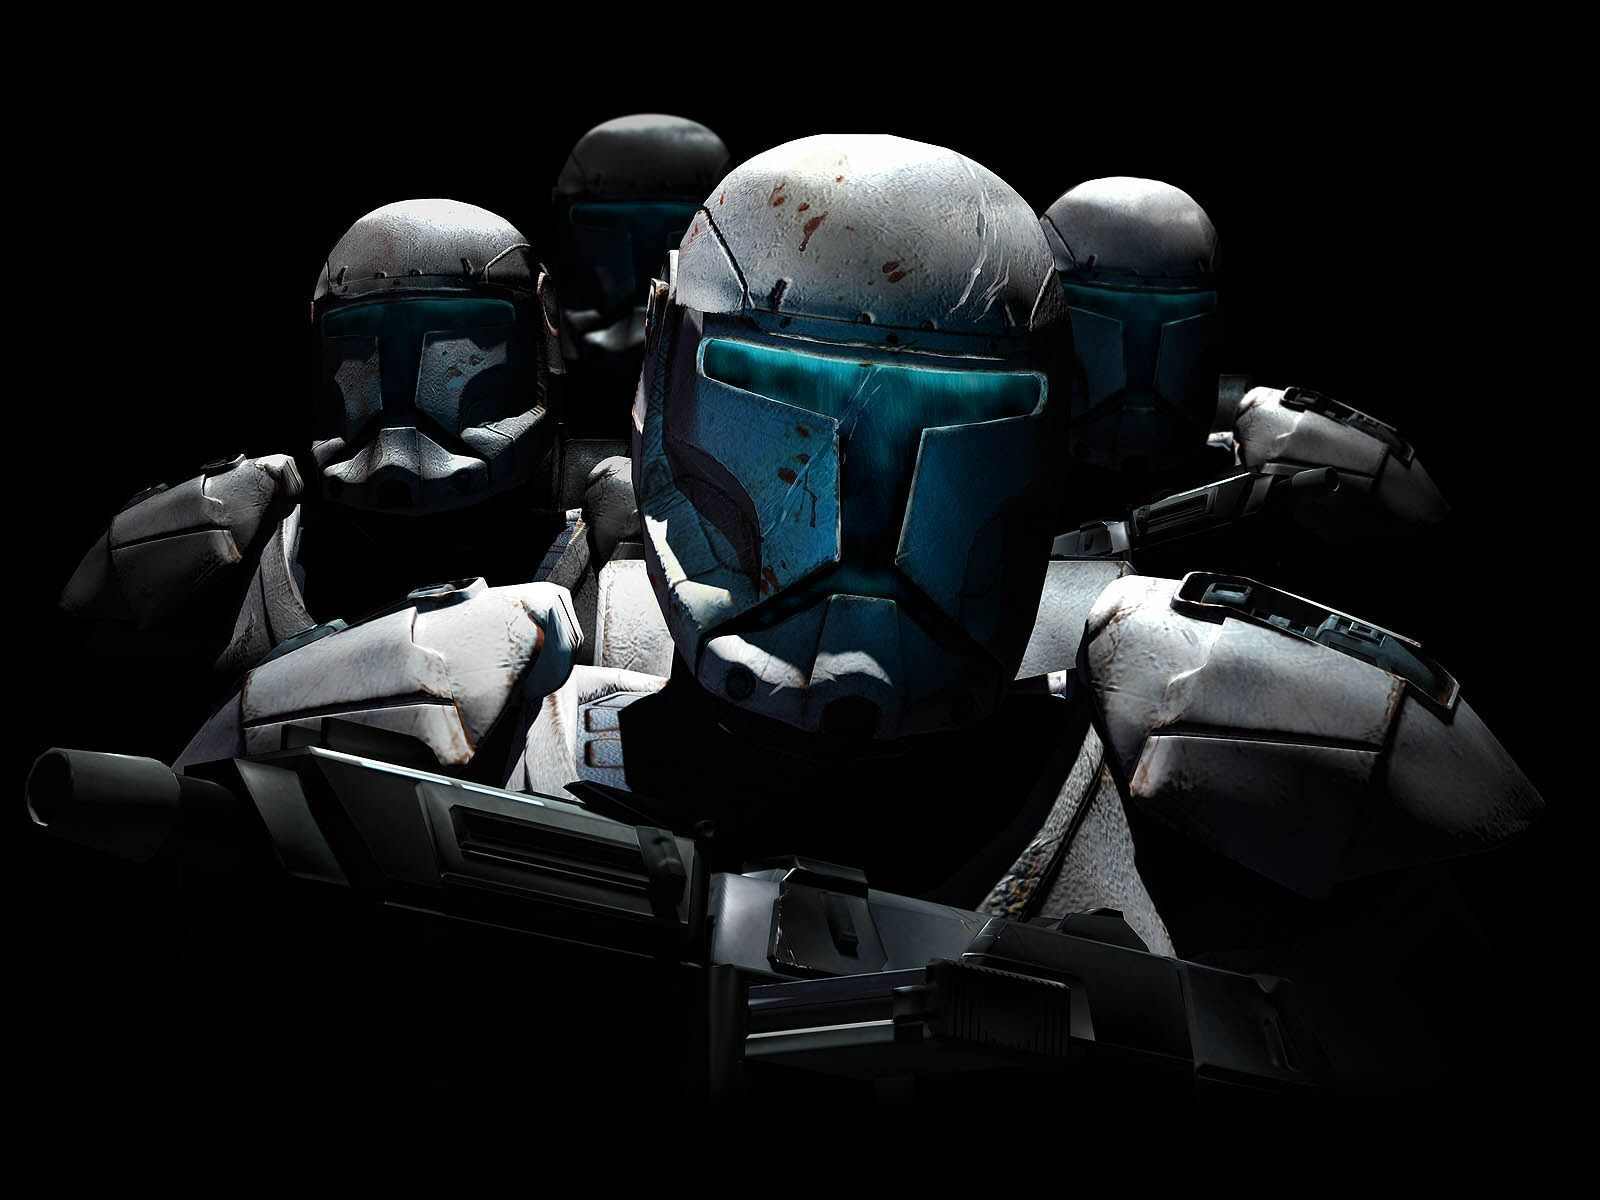 star wars clone trooper wallpapers - wallpaper cave | download